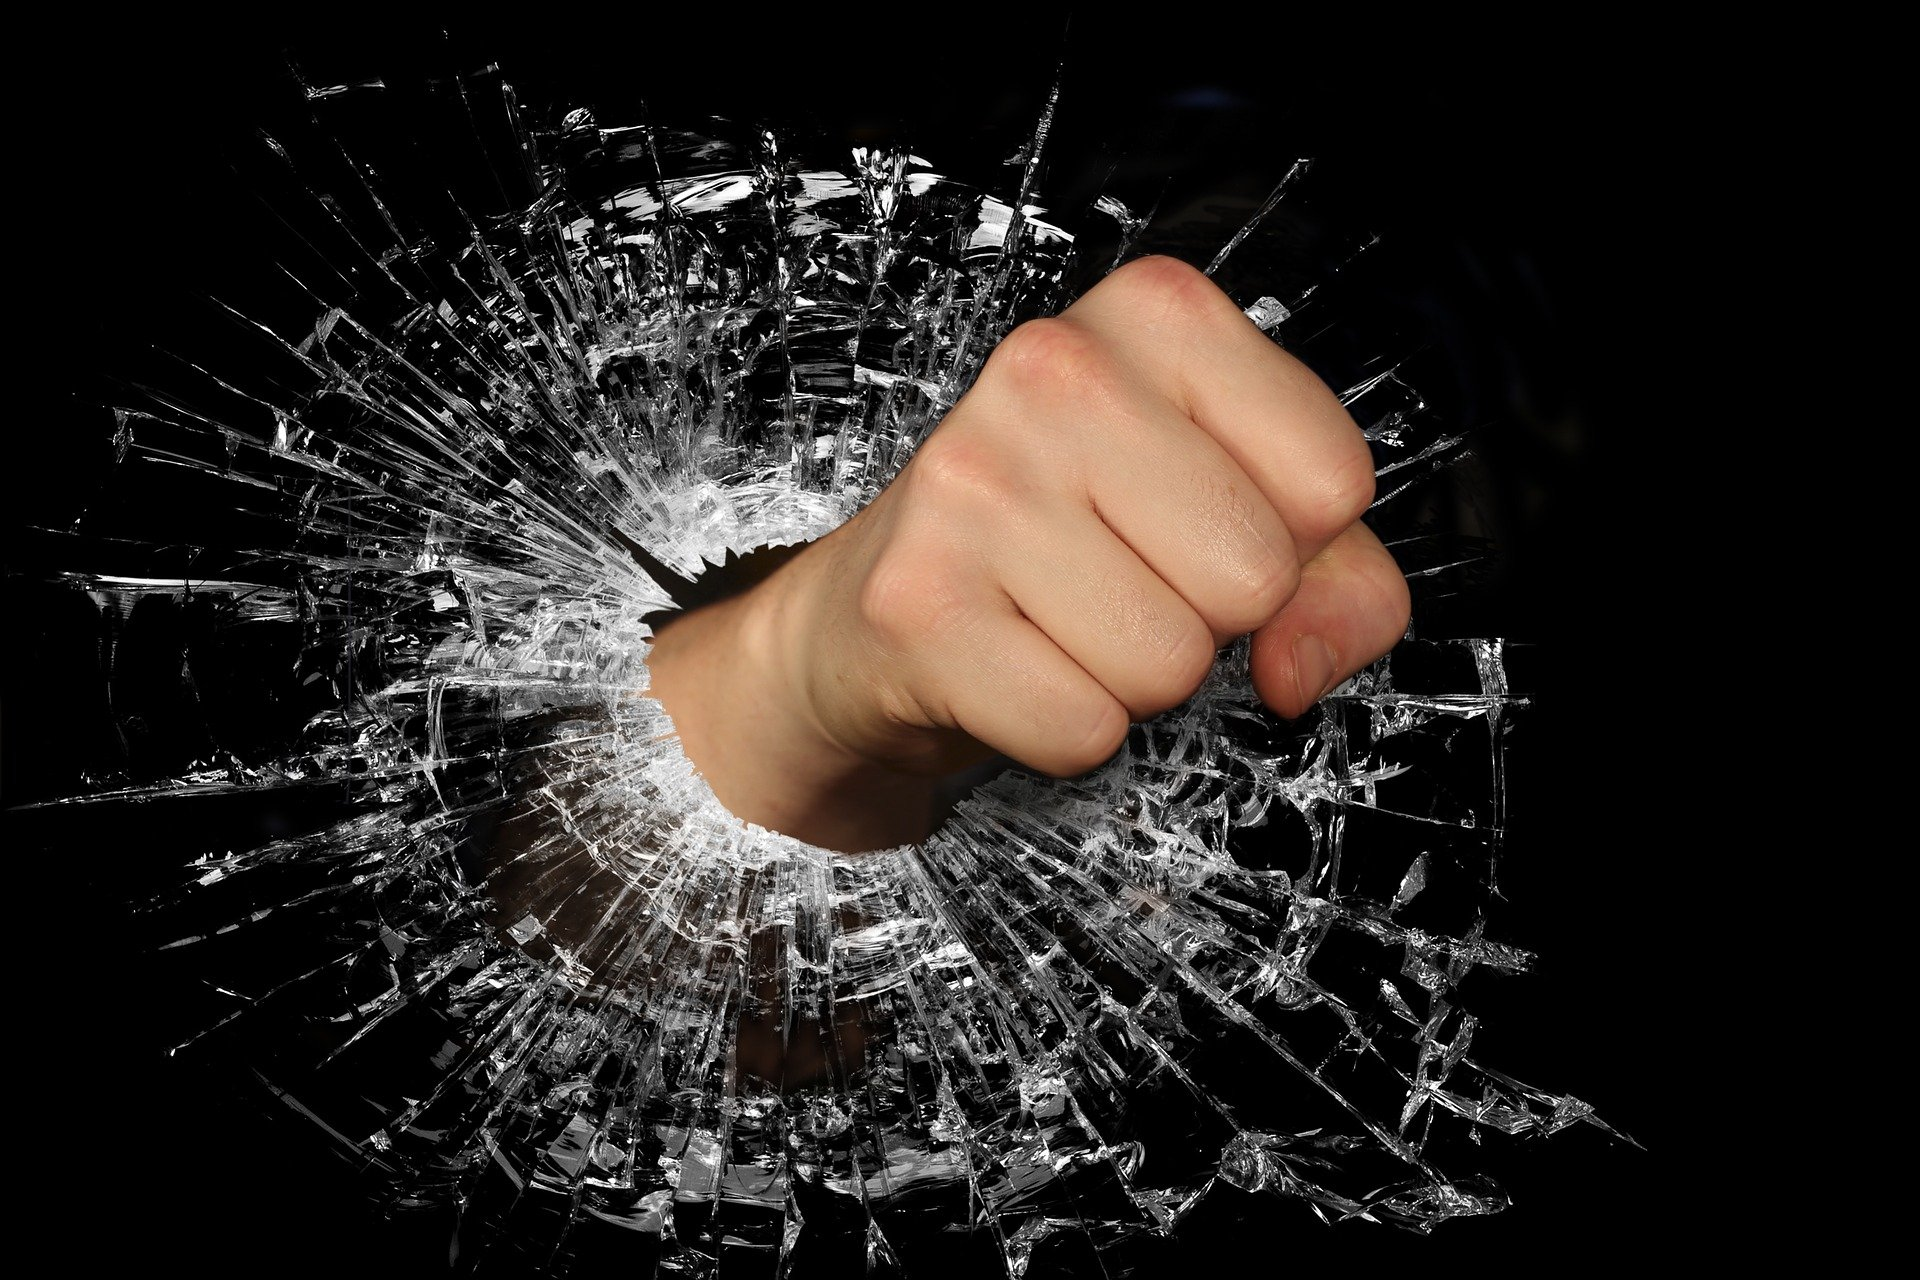 Fist punching through glass